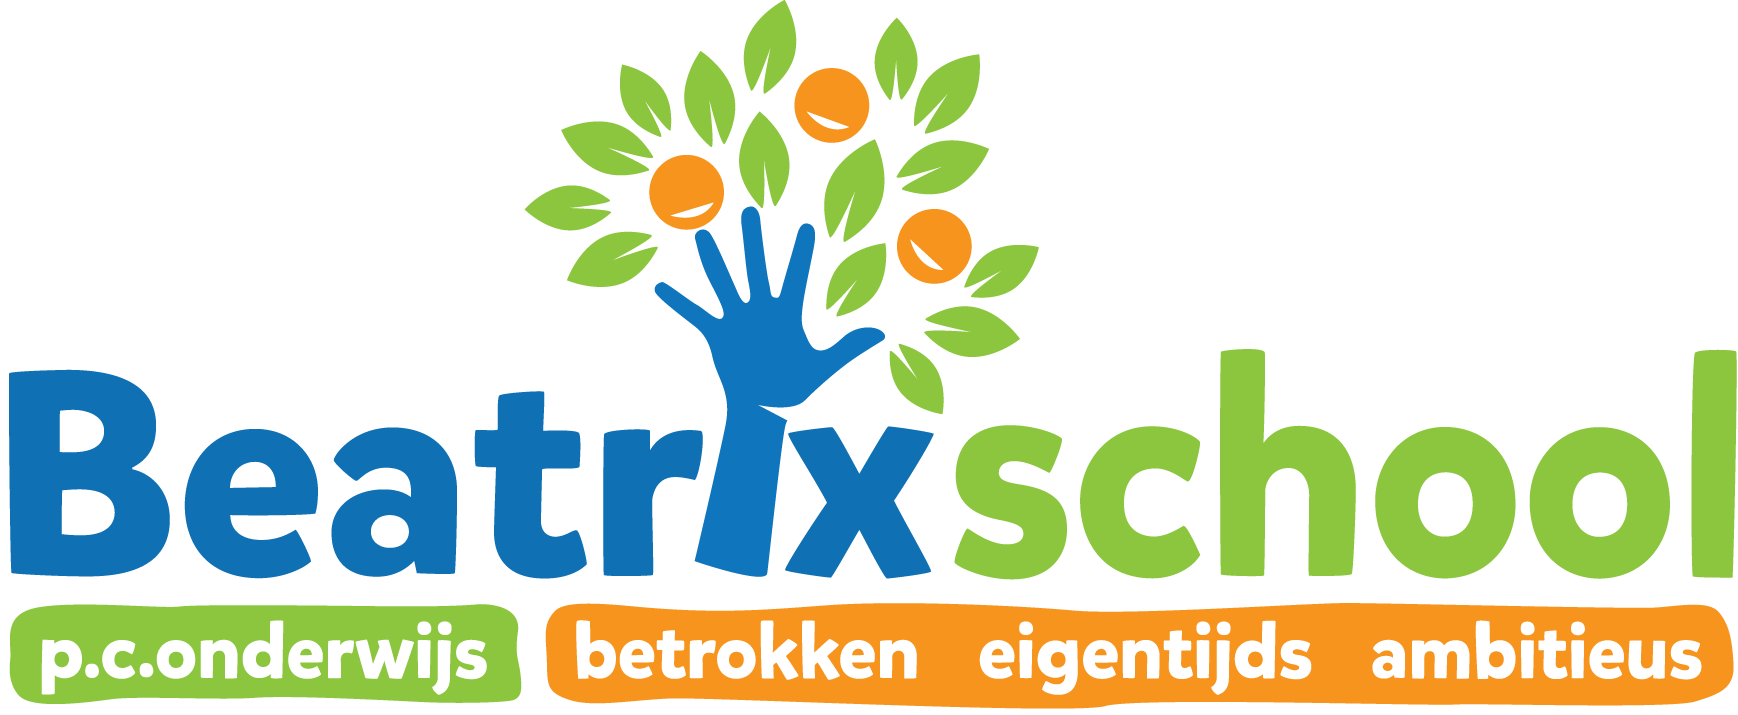 Beatrixschool